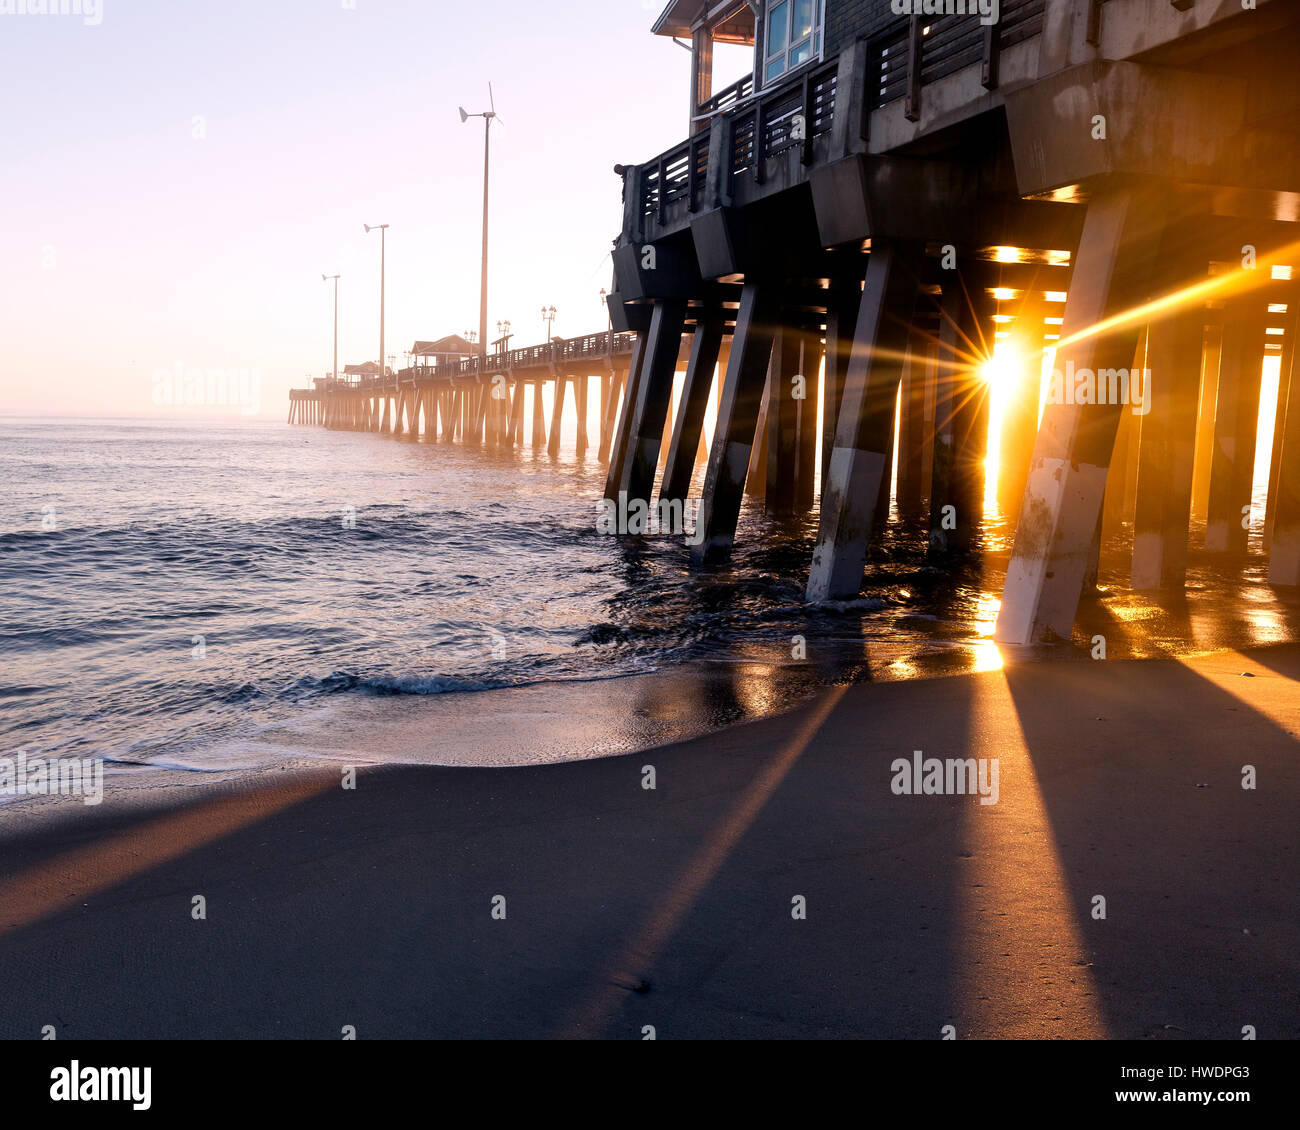 NC00789-00...North Carolina - Sunrise at Jennetts Pier near Whalebone Junction on the Outer Banks. - Stock Image